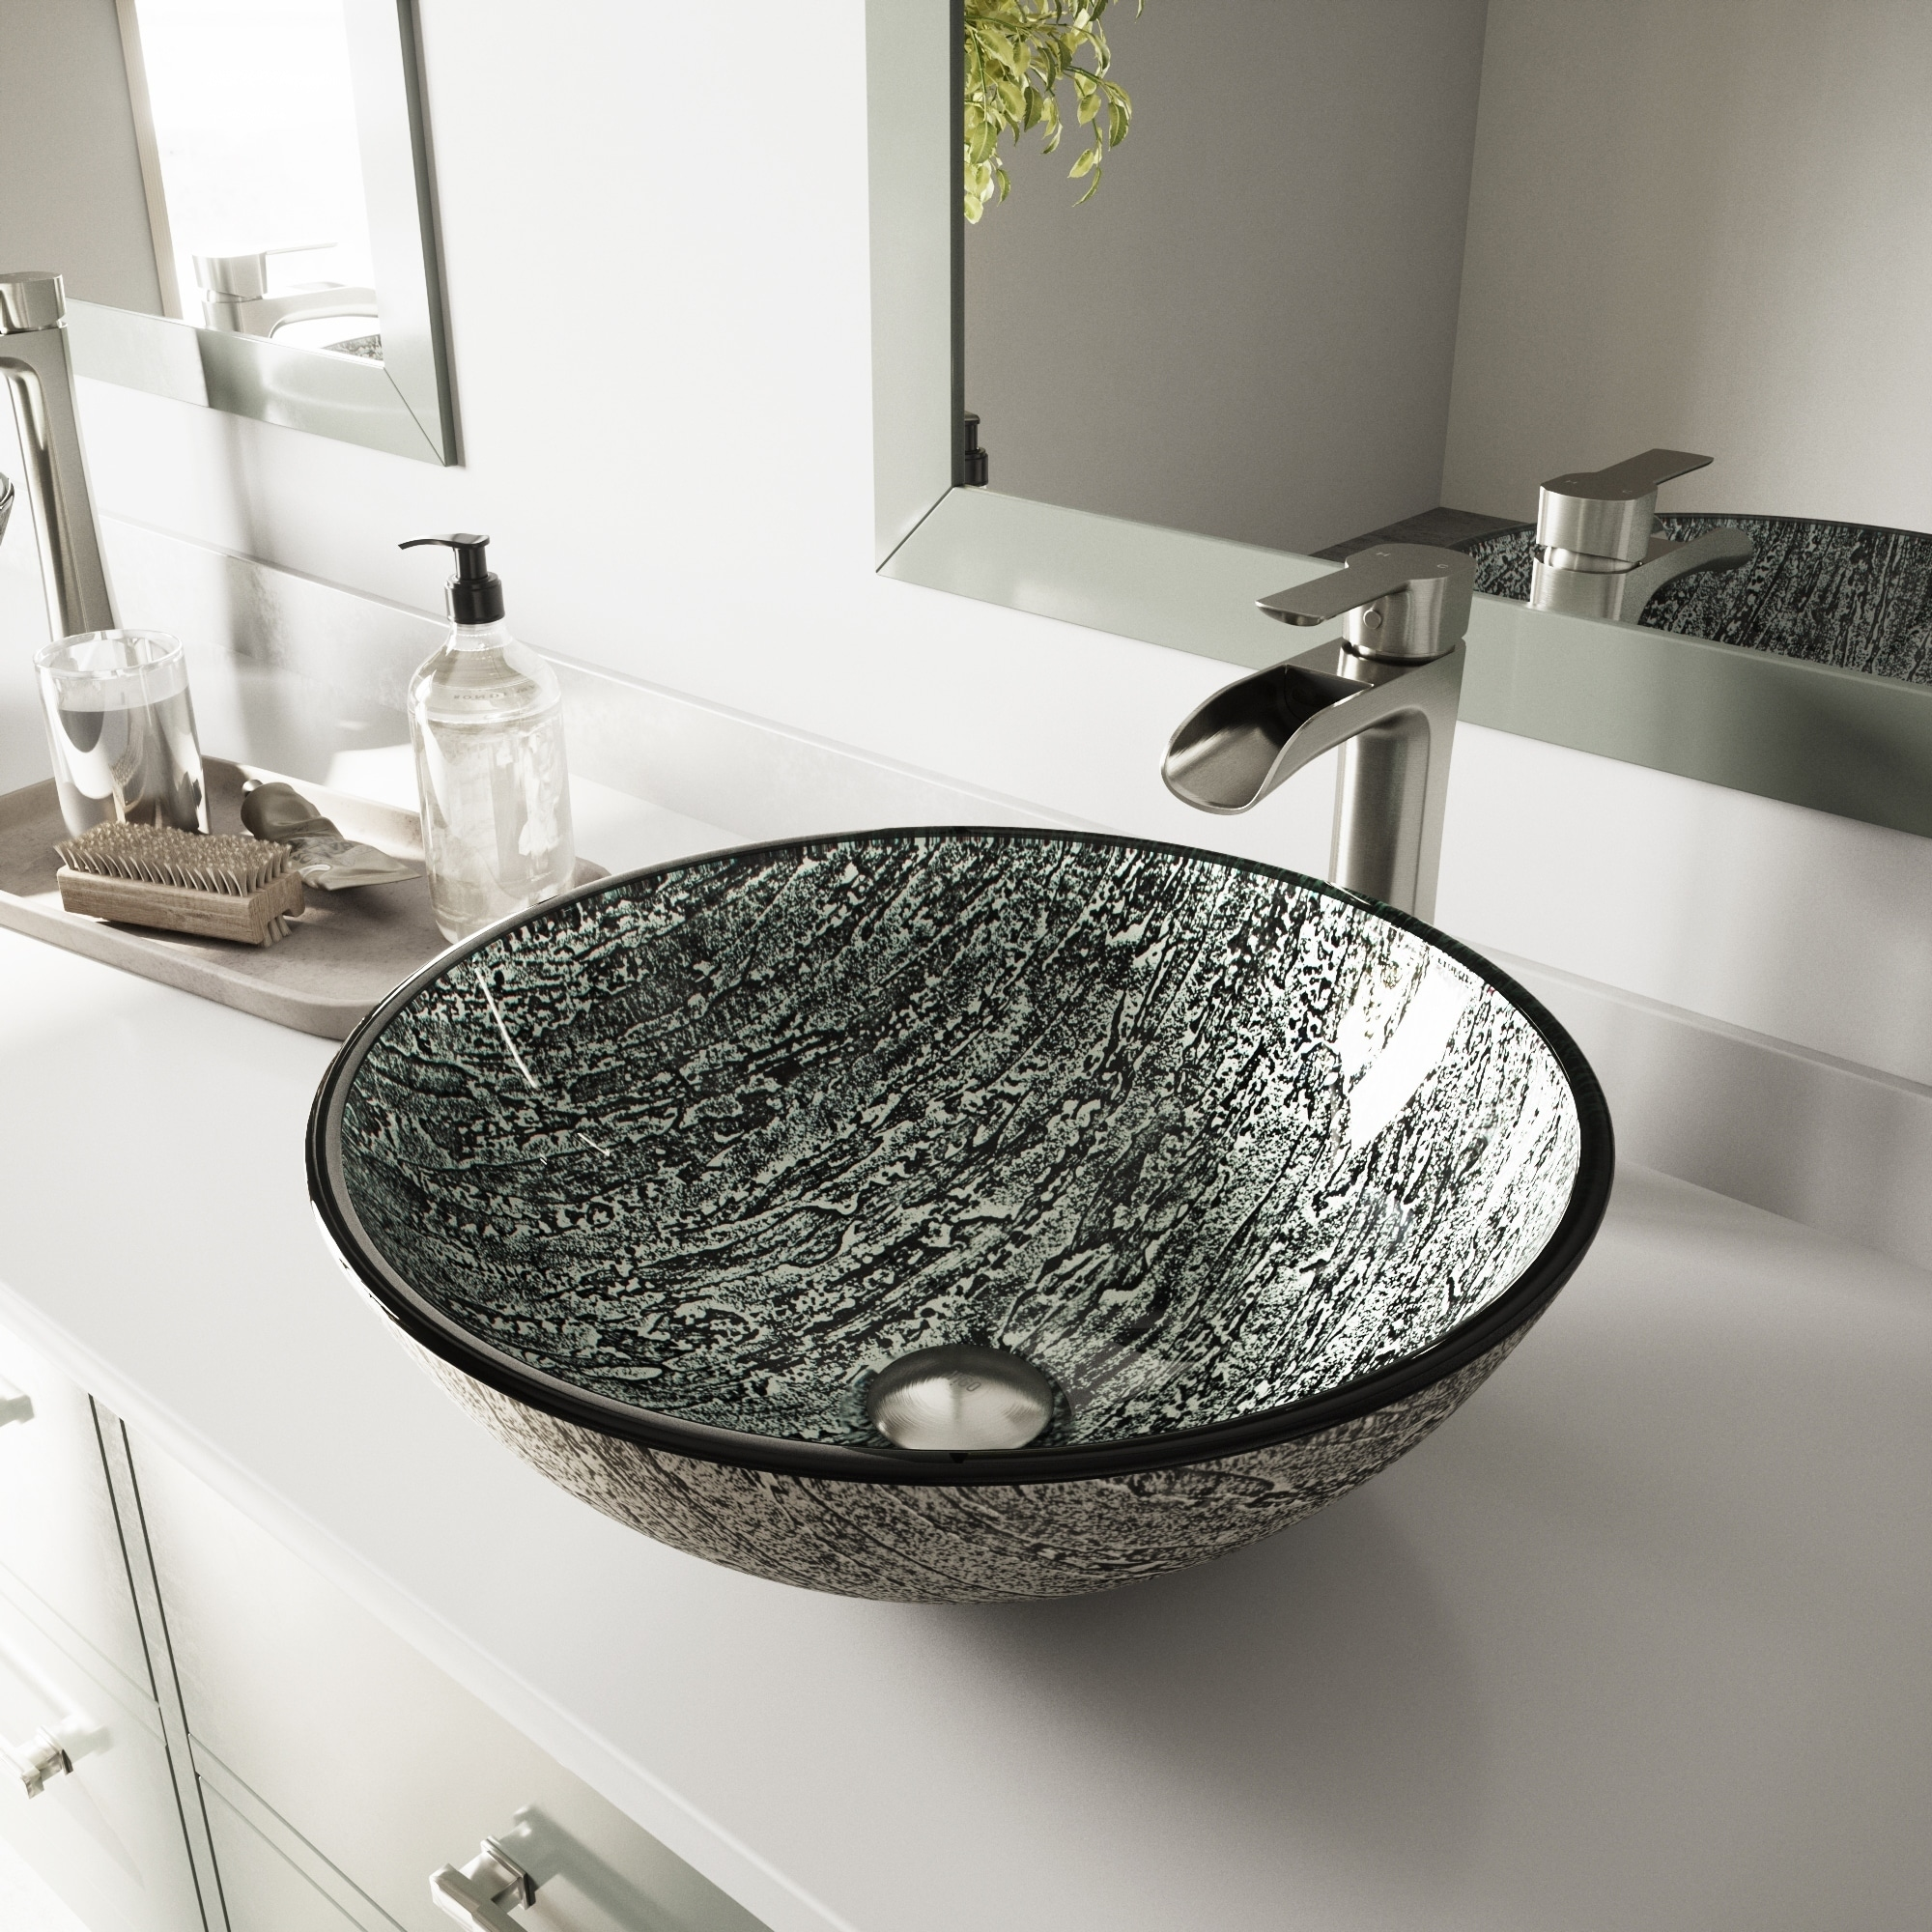 Buy silver finish bathroom sinks online at overstock our best sinks deals